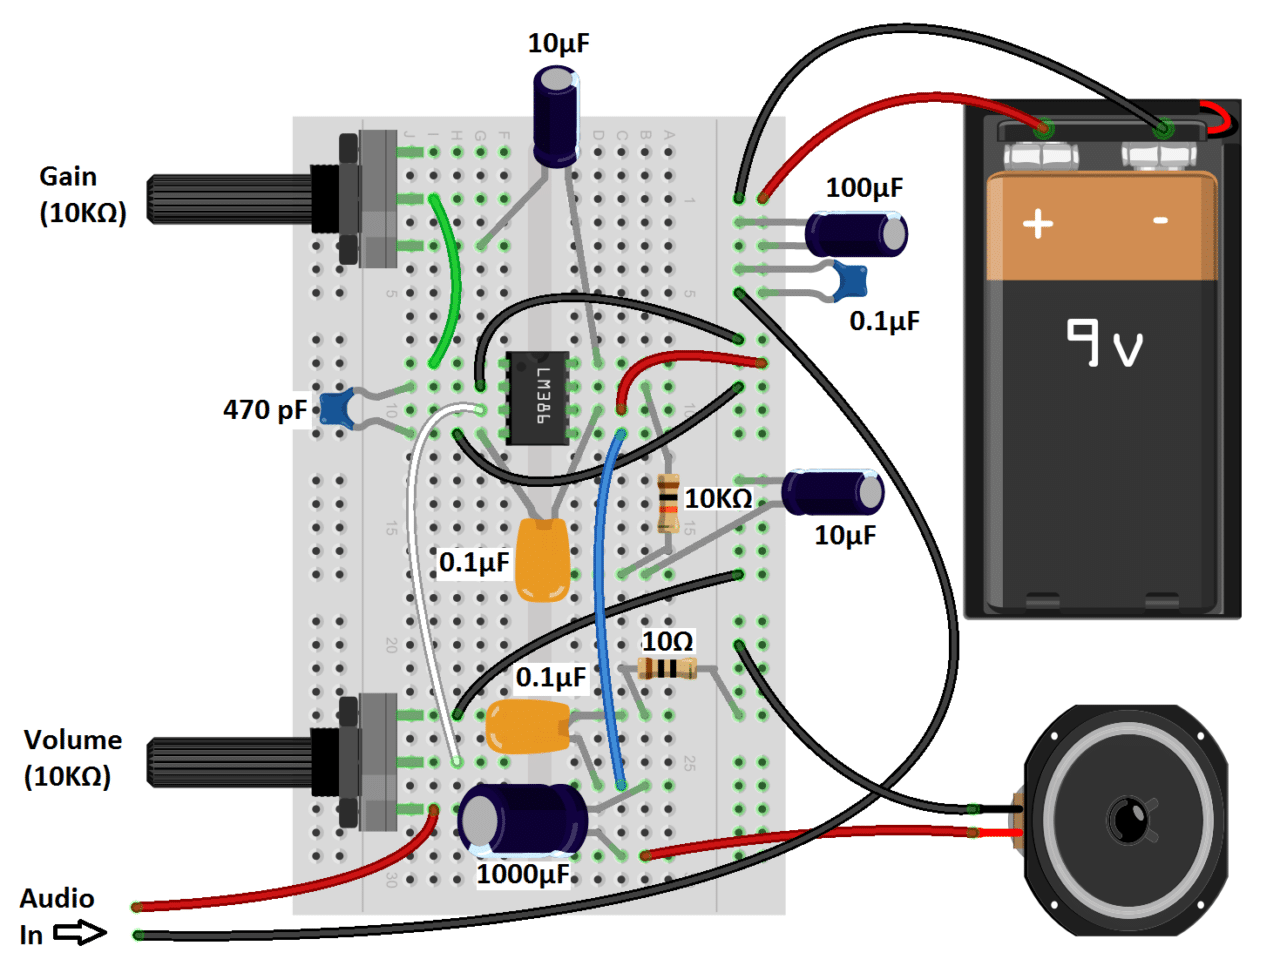 Build A Great Sounding Audio Amplifier With Bass Boost From The Lm386 Circuit Diagram Using Breadboard One Thing To Keep In Mind When Youre Wiring Any Is That Cleanest Sound Will Result Keeping All Wire Connections And Components As